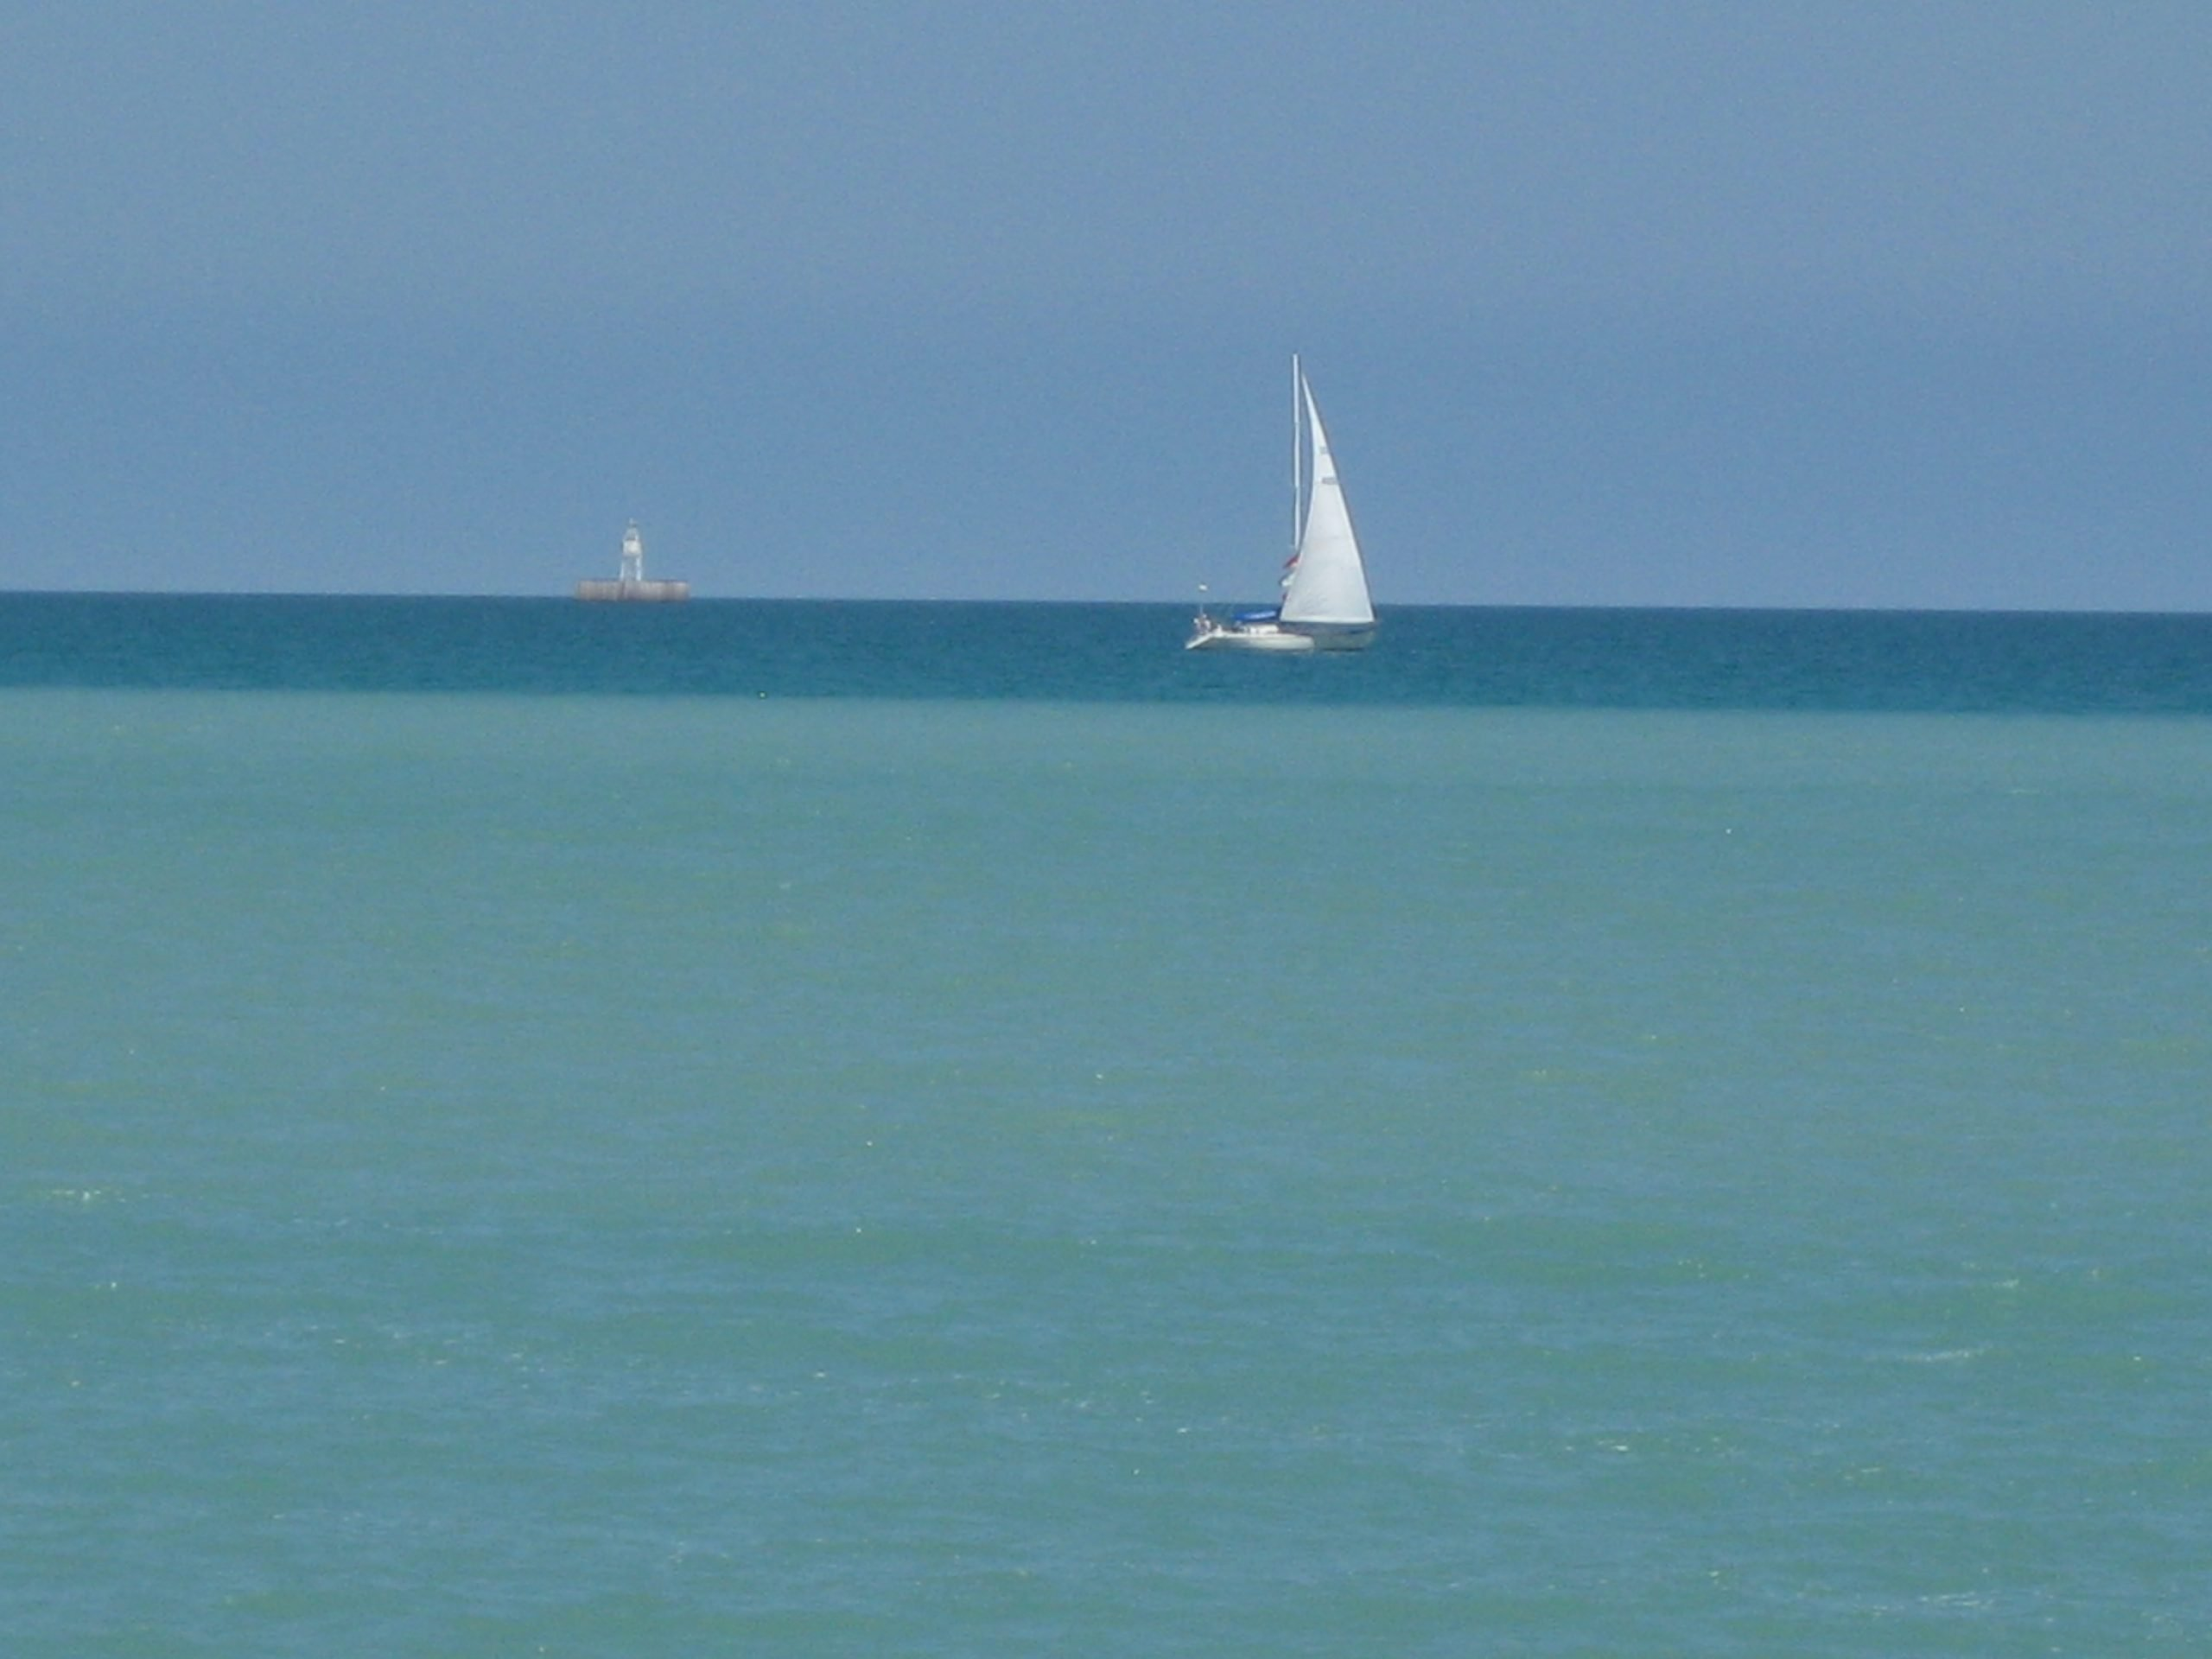 Breezes on Lake Michigan, from the shores of my town, Racine.